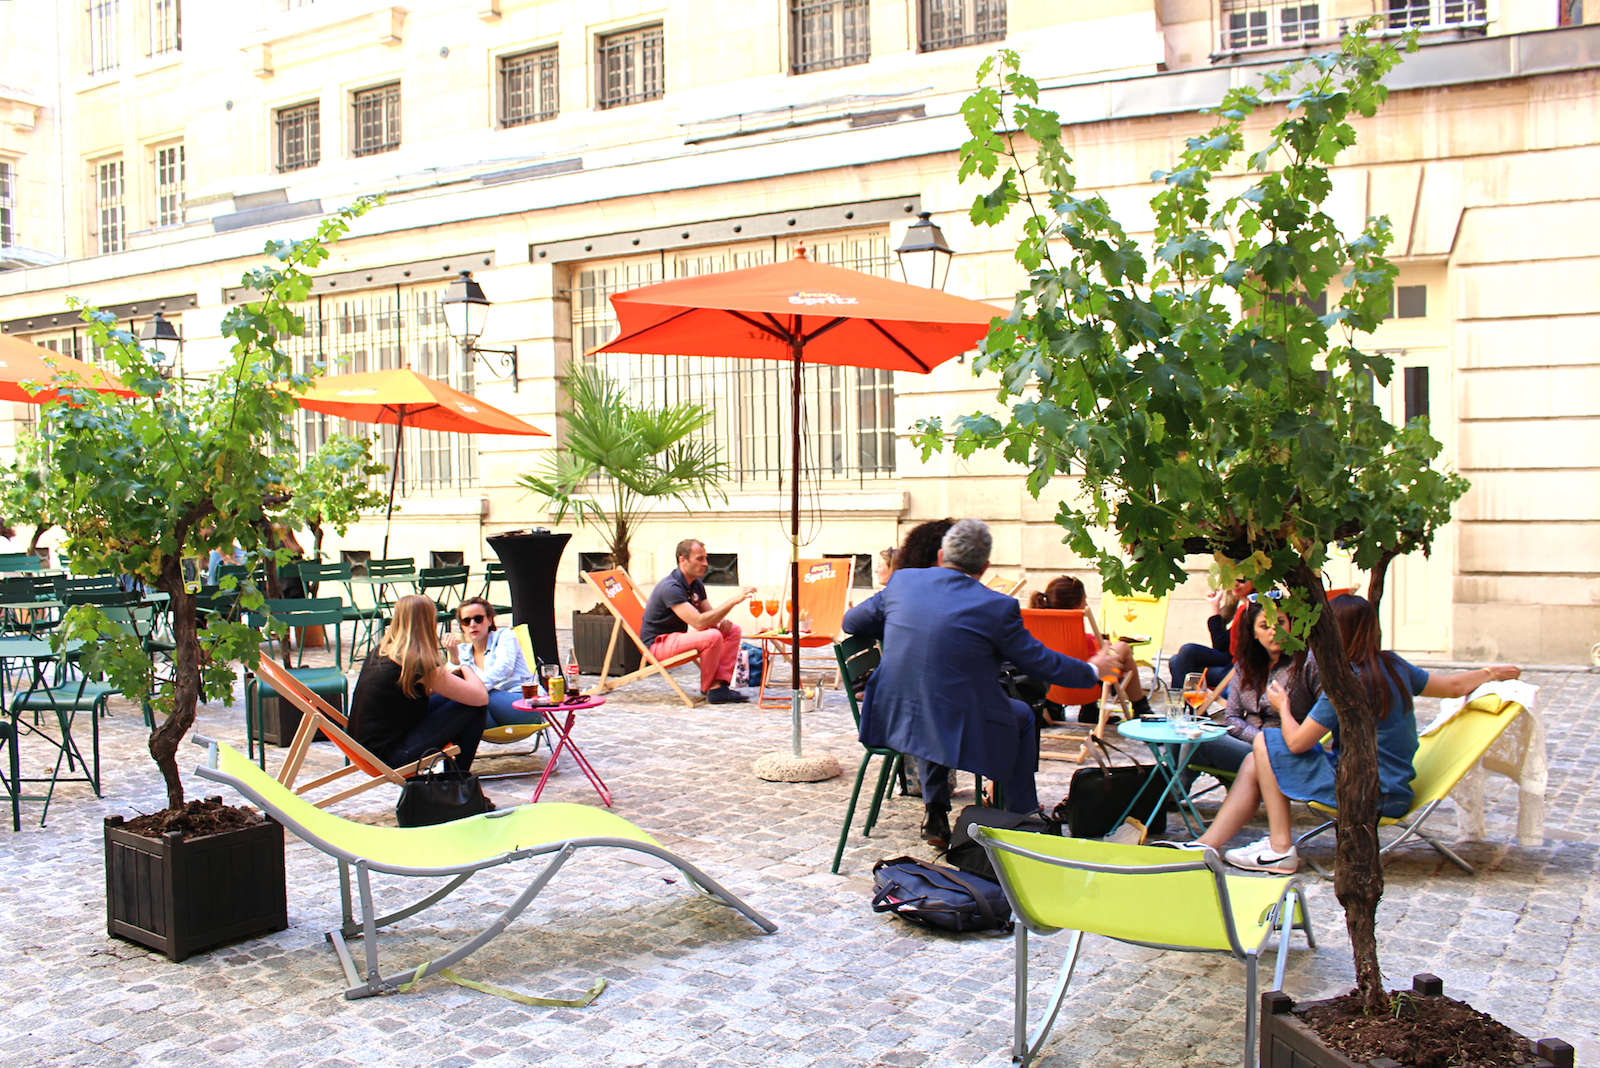 Café Cour: A Hidden Terrace in Paris' Marais